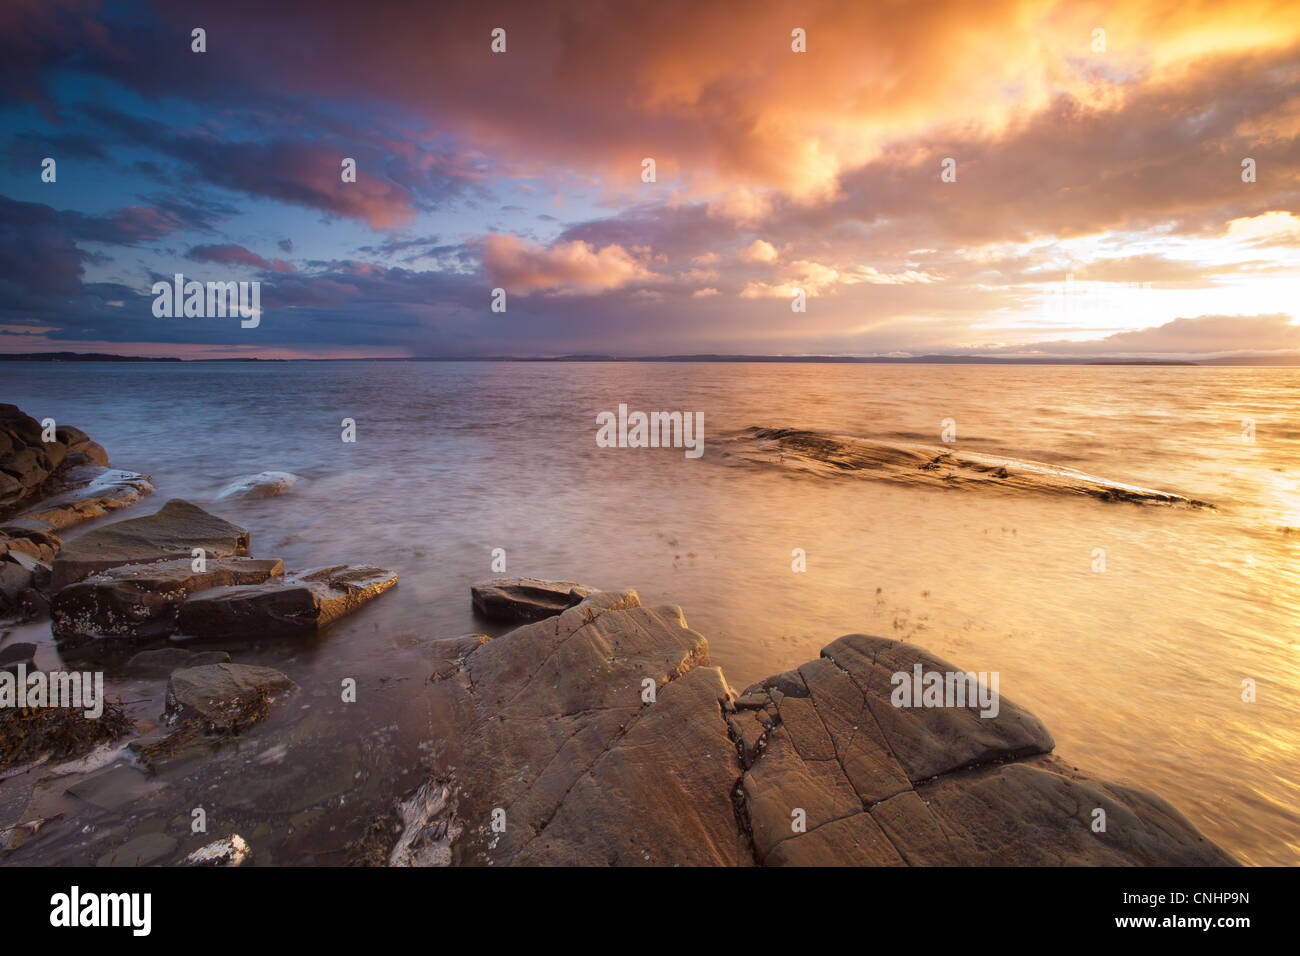 Beautiful sunset by the Oslofjord at Nes on the island Jeløy, Oslofjorden, Norway. - Stock Image